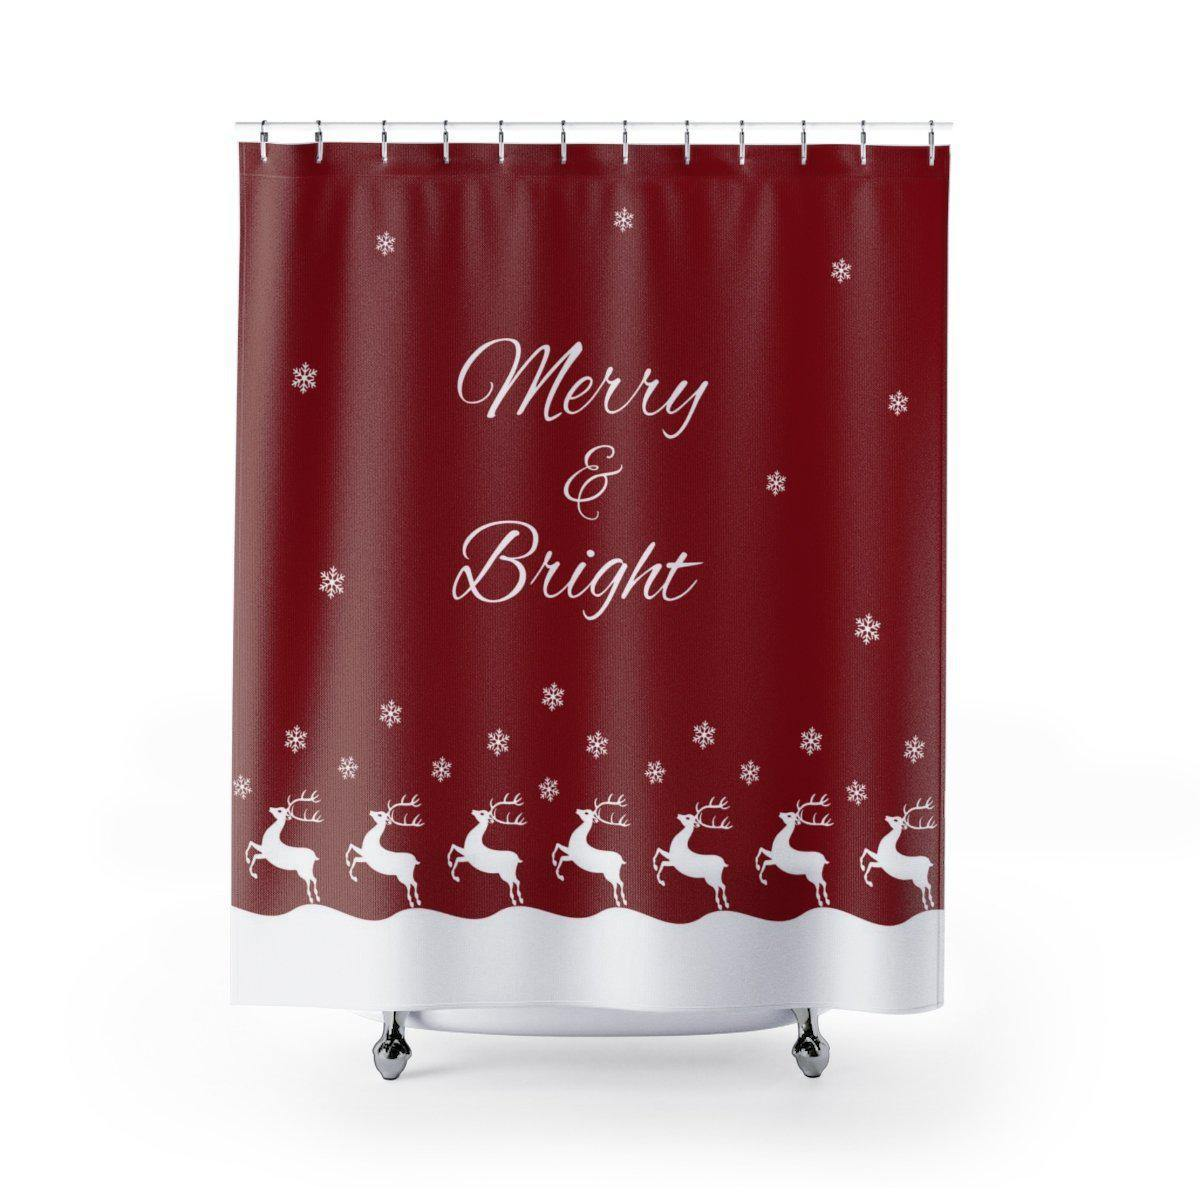 Merry & Bright Christmas Shower Curtain - Shower Curtains - W.FRANCIS